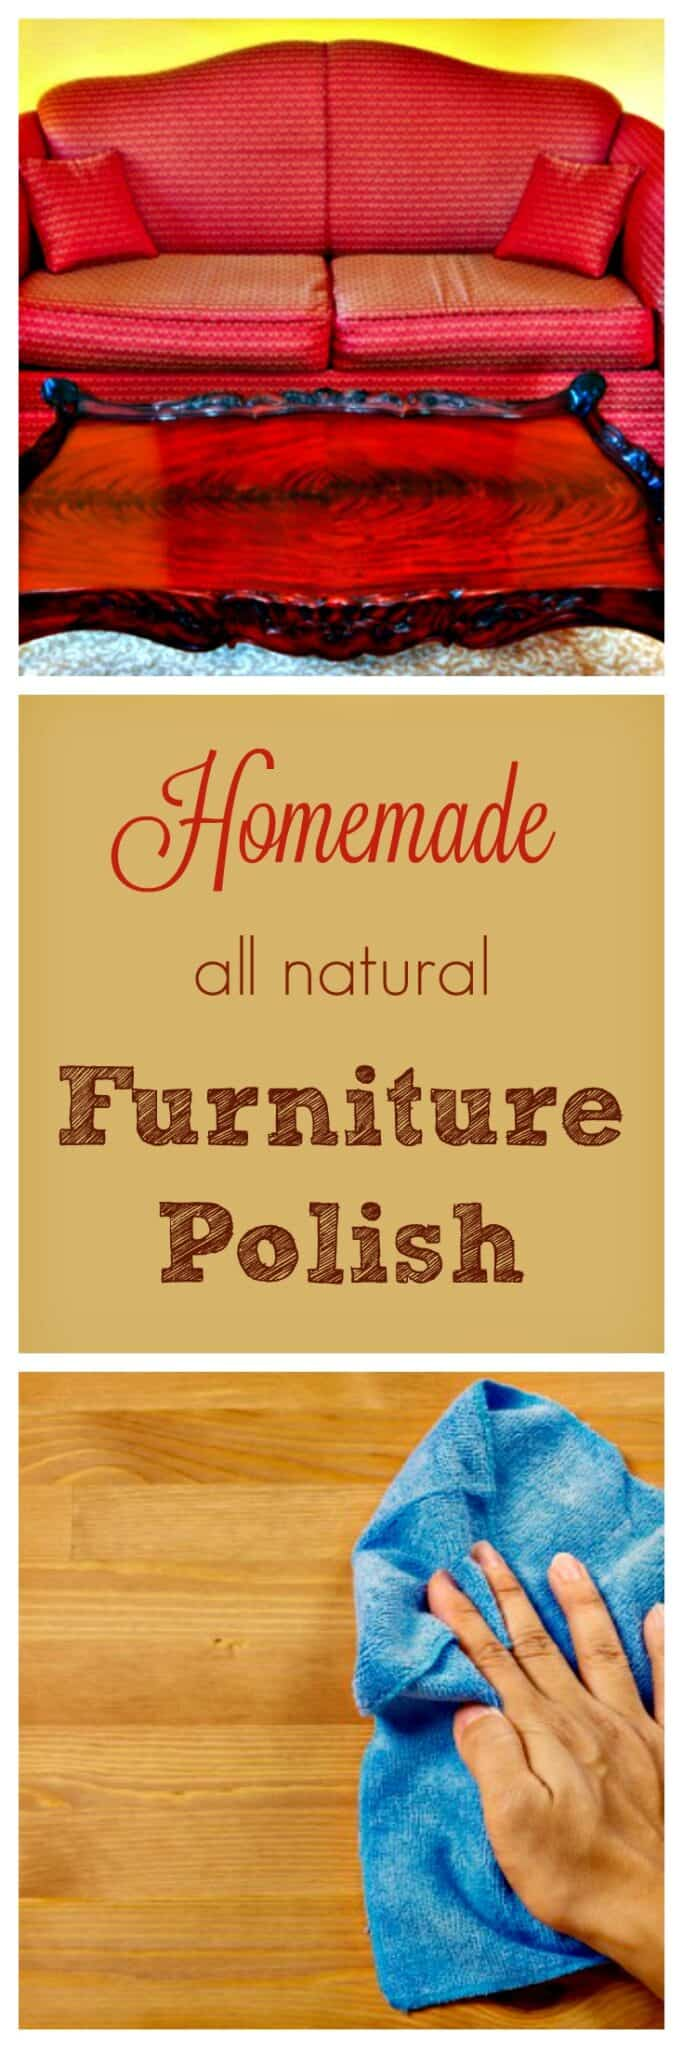 Easy DIY furniture polish recipe that cleans, shines & moisturizes wood furniture